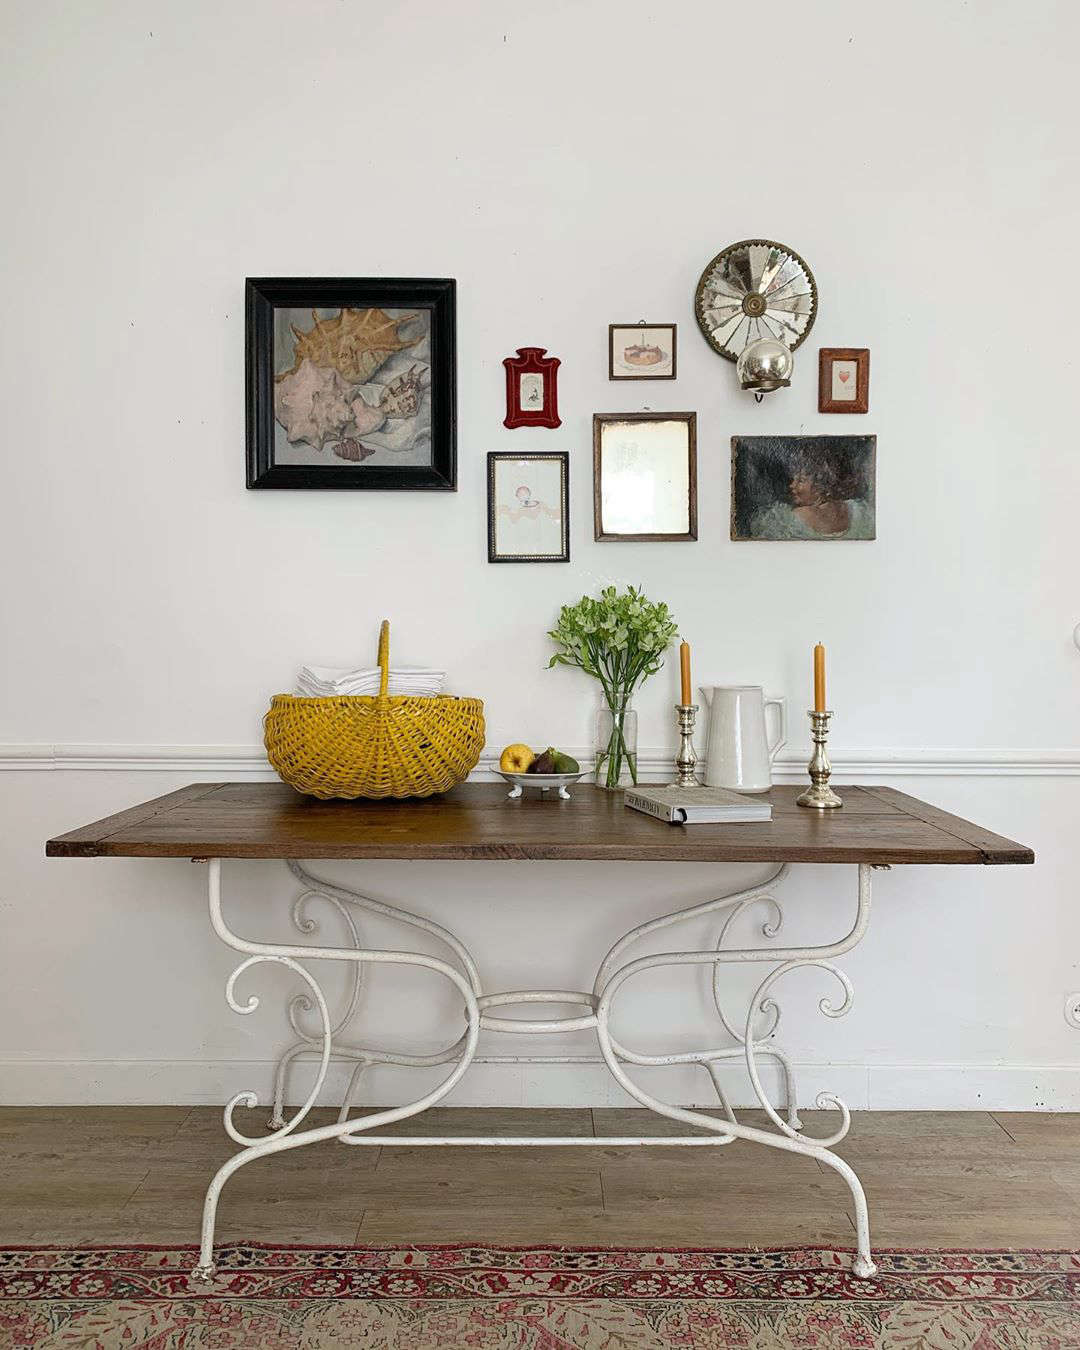 Tabletops and walls are places for ever-shifting vignettes.